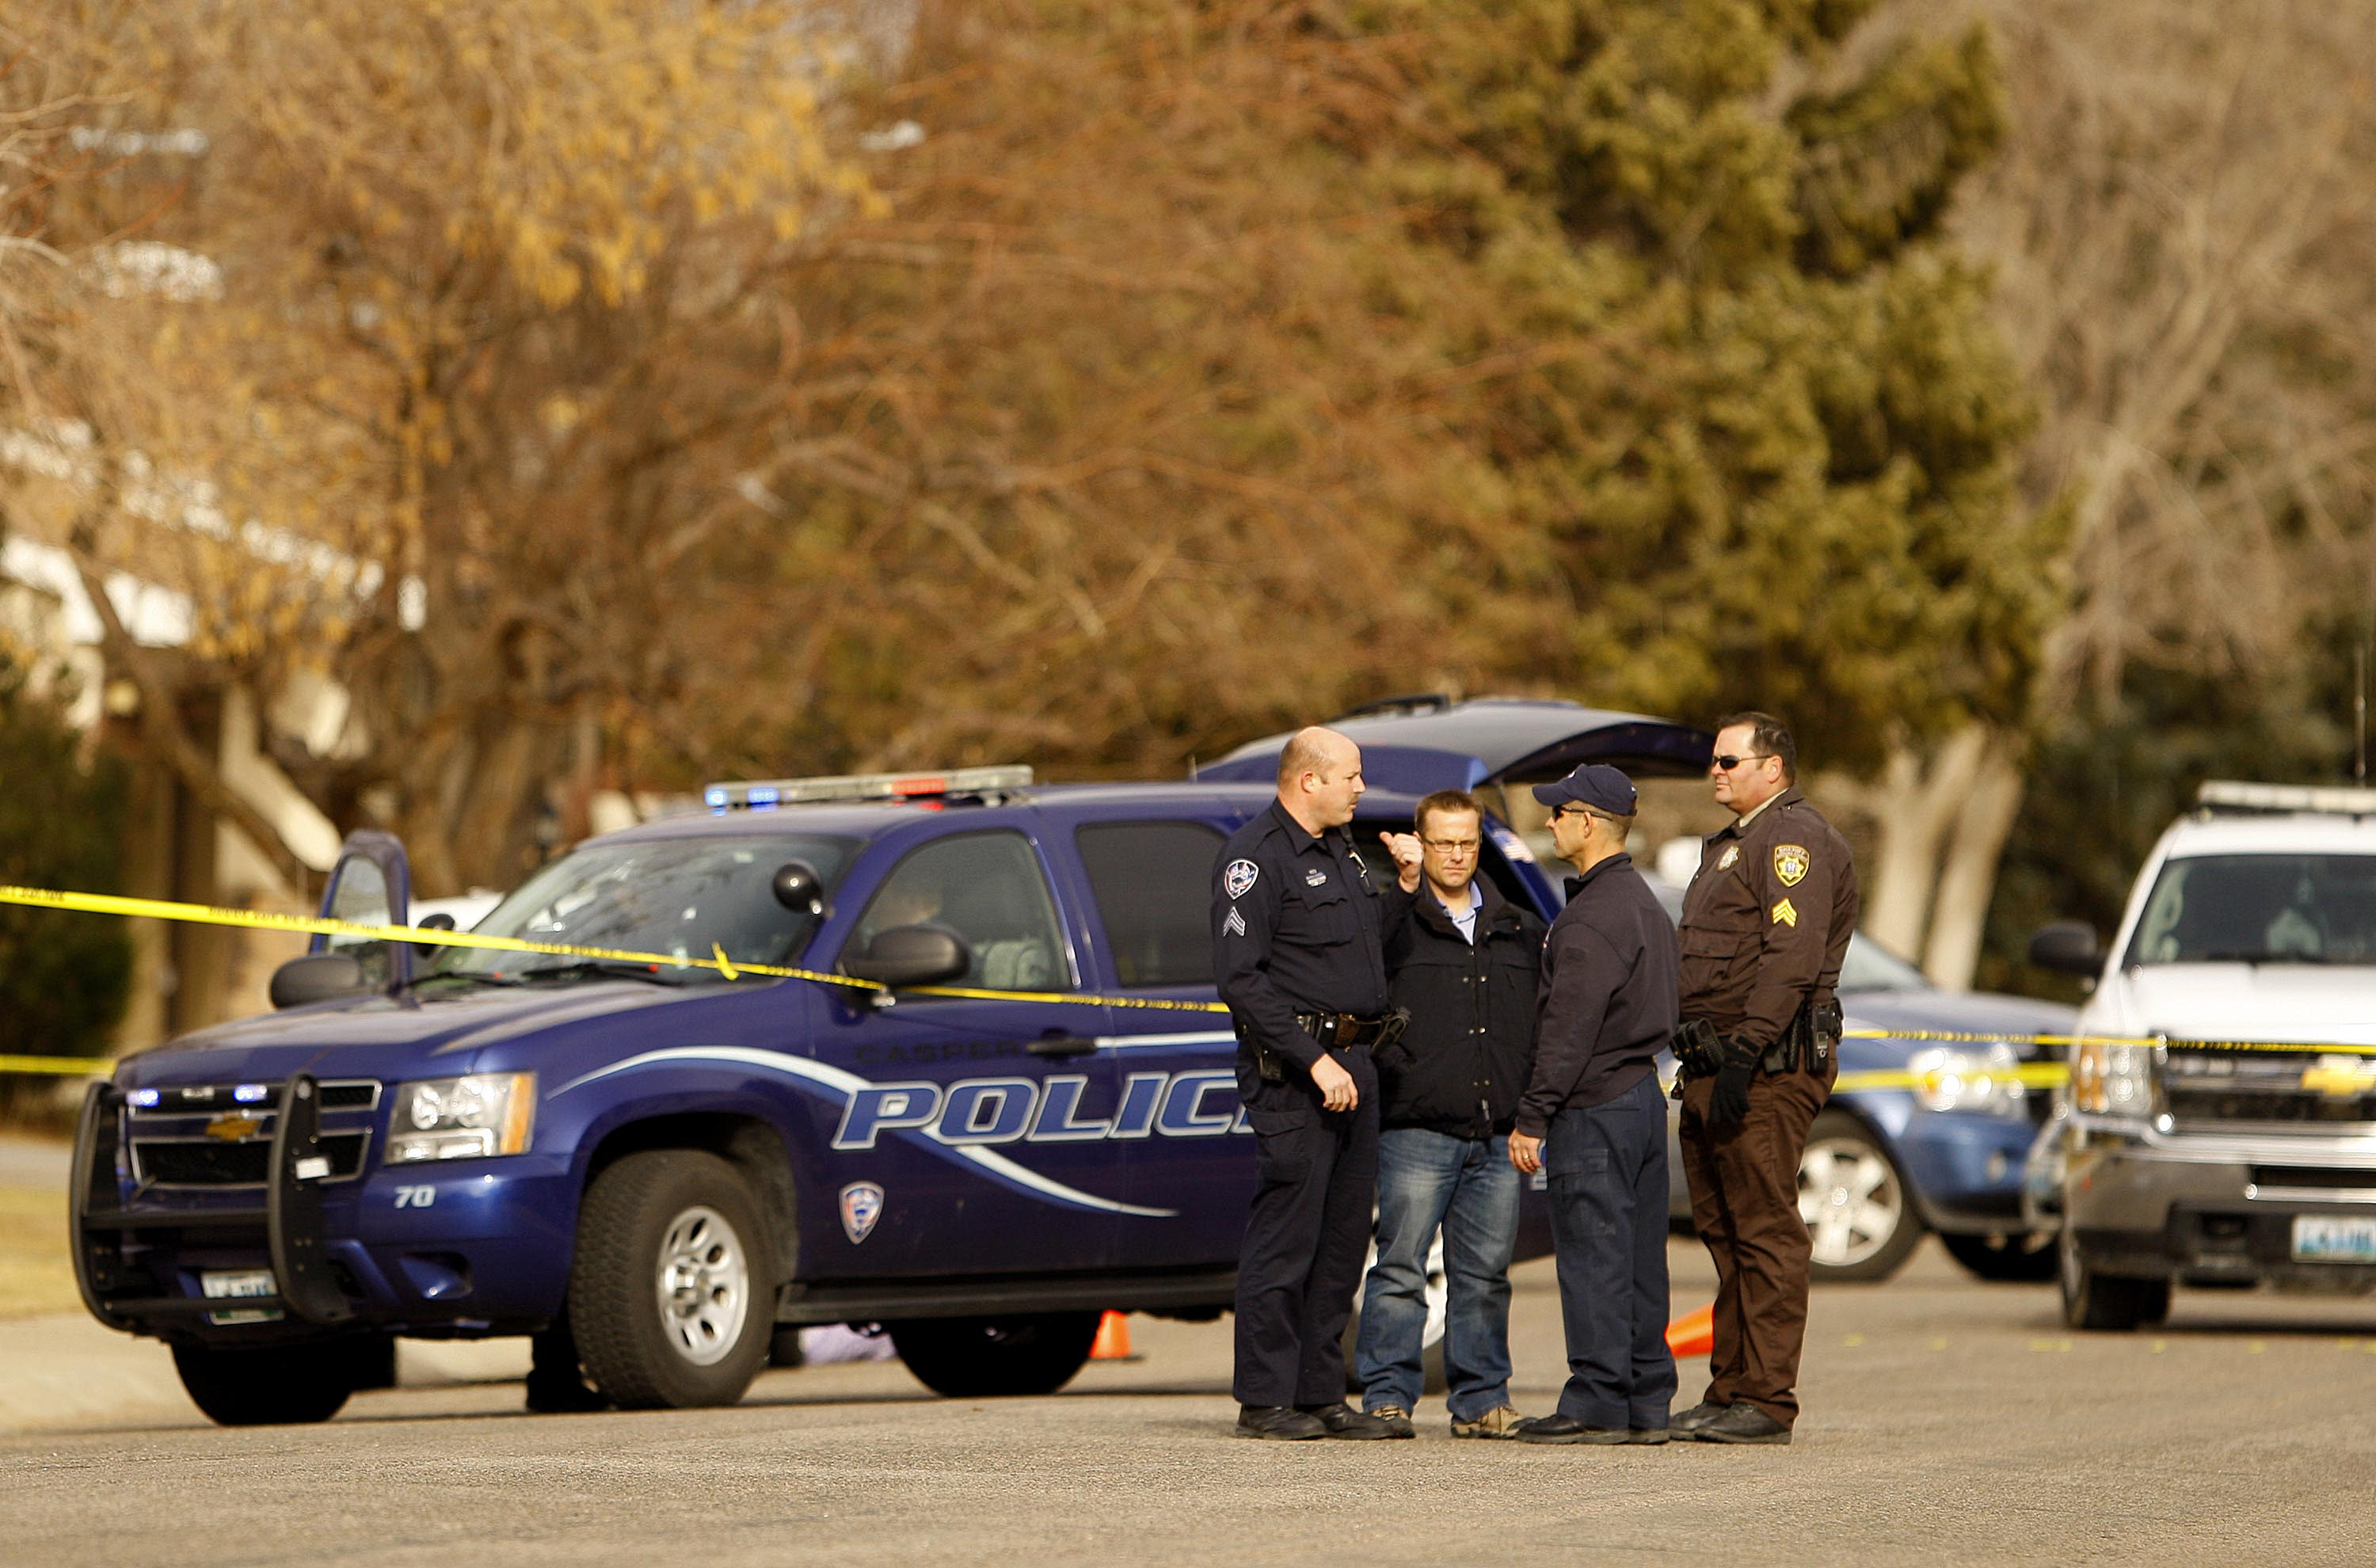 Police investigate the scene of a homicide in front of a house on Hawthorne Ave. in Casper on Friday, Nov. 30, 2012, in Casper, Wyo. The body of the victim was visible by neighbors for several hours. A man wielding a sharp-edged weapon killed one person in this Casper neighborhood Friday before killing a male teacher and himself in front of students in a community college classroom, causing a campus-wide lockdown as authorities tried to piece together what happened. (AP Photo/Dan Cepeda, Casper Star-Tribune) MANDATORY CREDIT; TRIB.COM